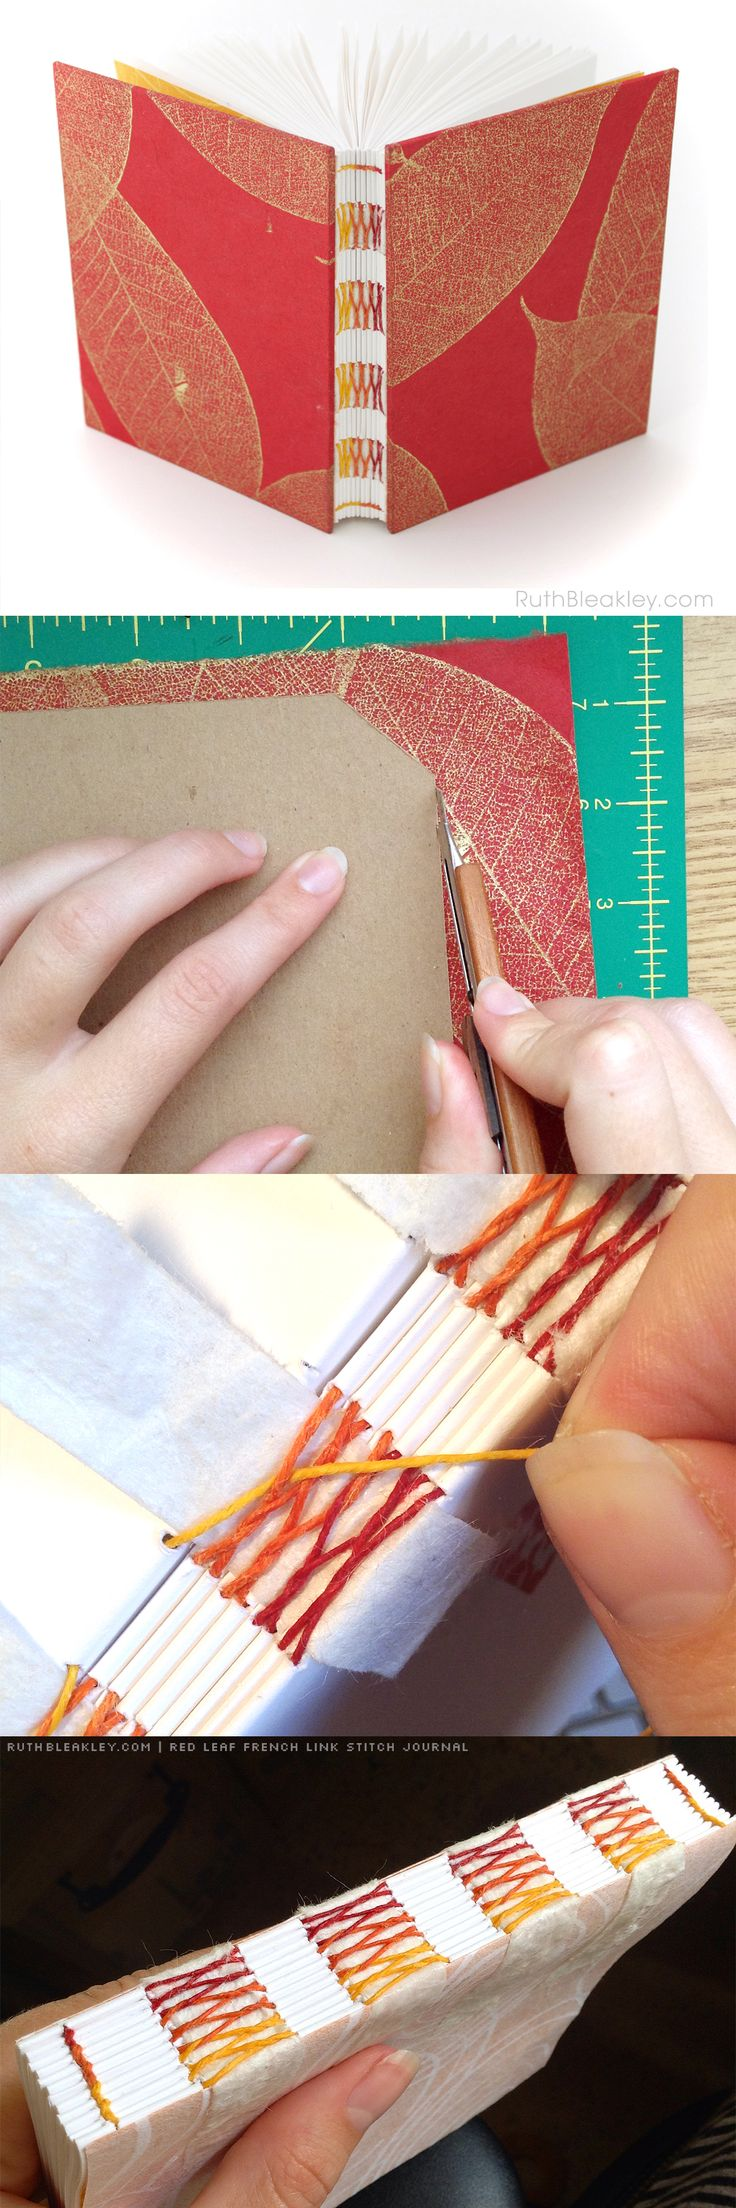 Red Leaf French Link Stitch Journal handmade by Ruth Bleakley - great gift for a writer!